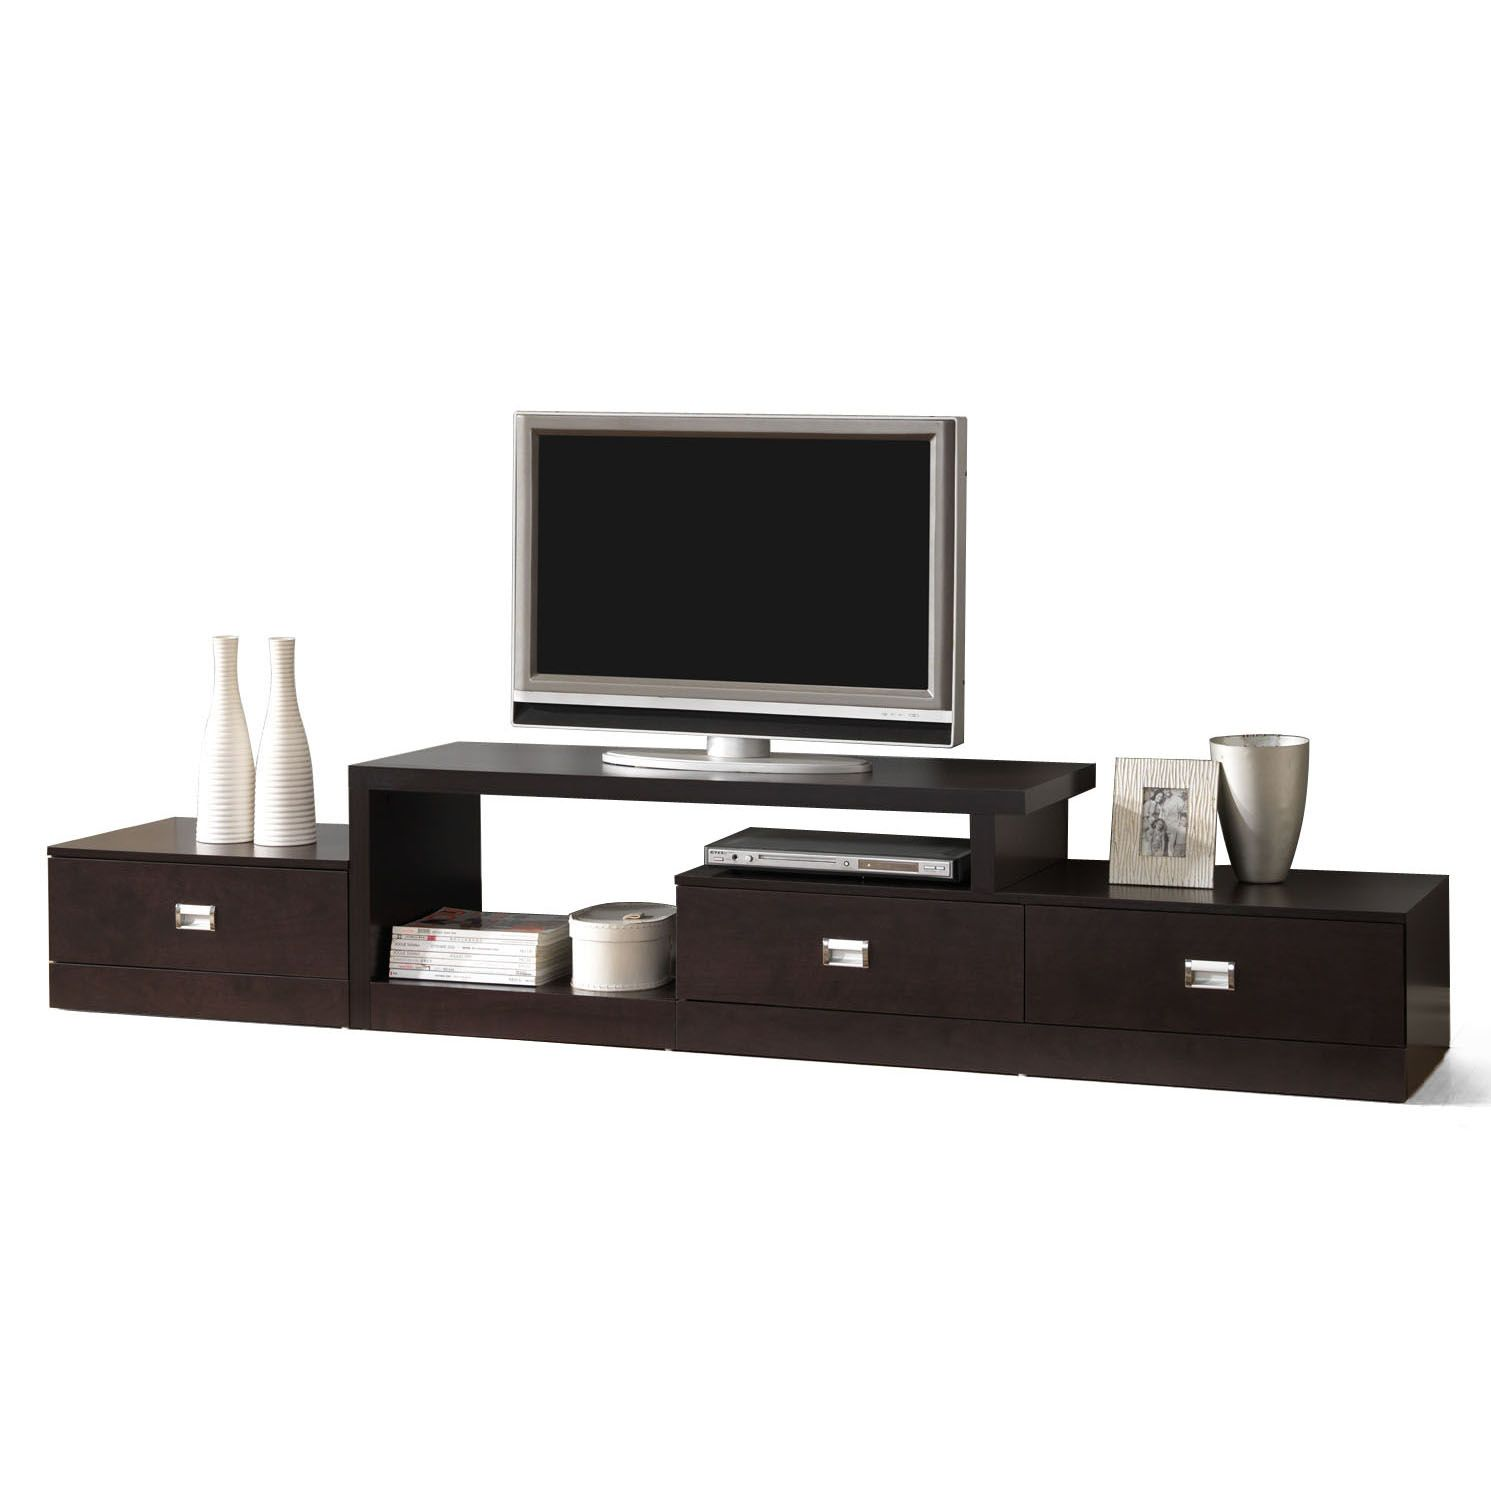 contemporary dark brown wood tv stand by baxton studio by baxton  - contemporary dark brown wood tv stand by baxton studio by baxton studio